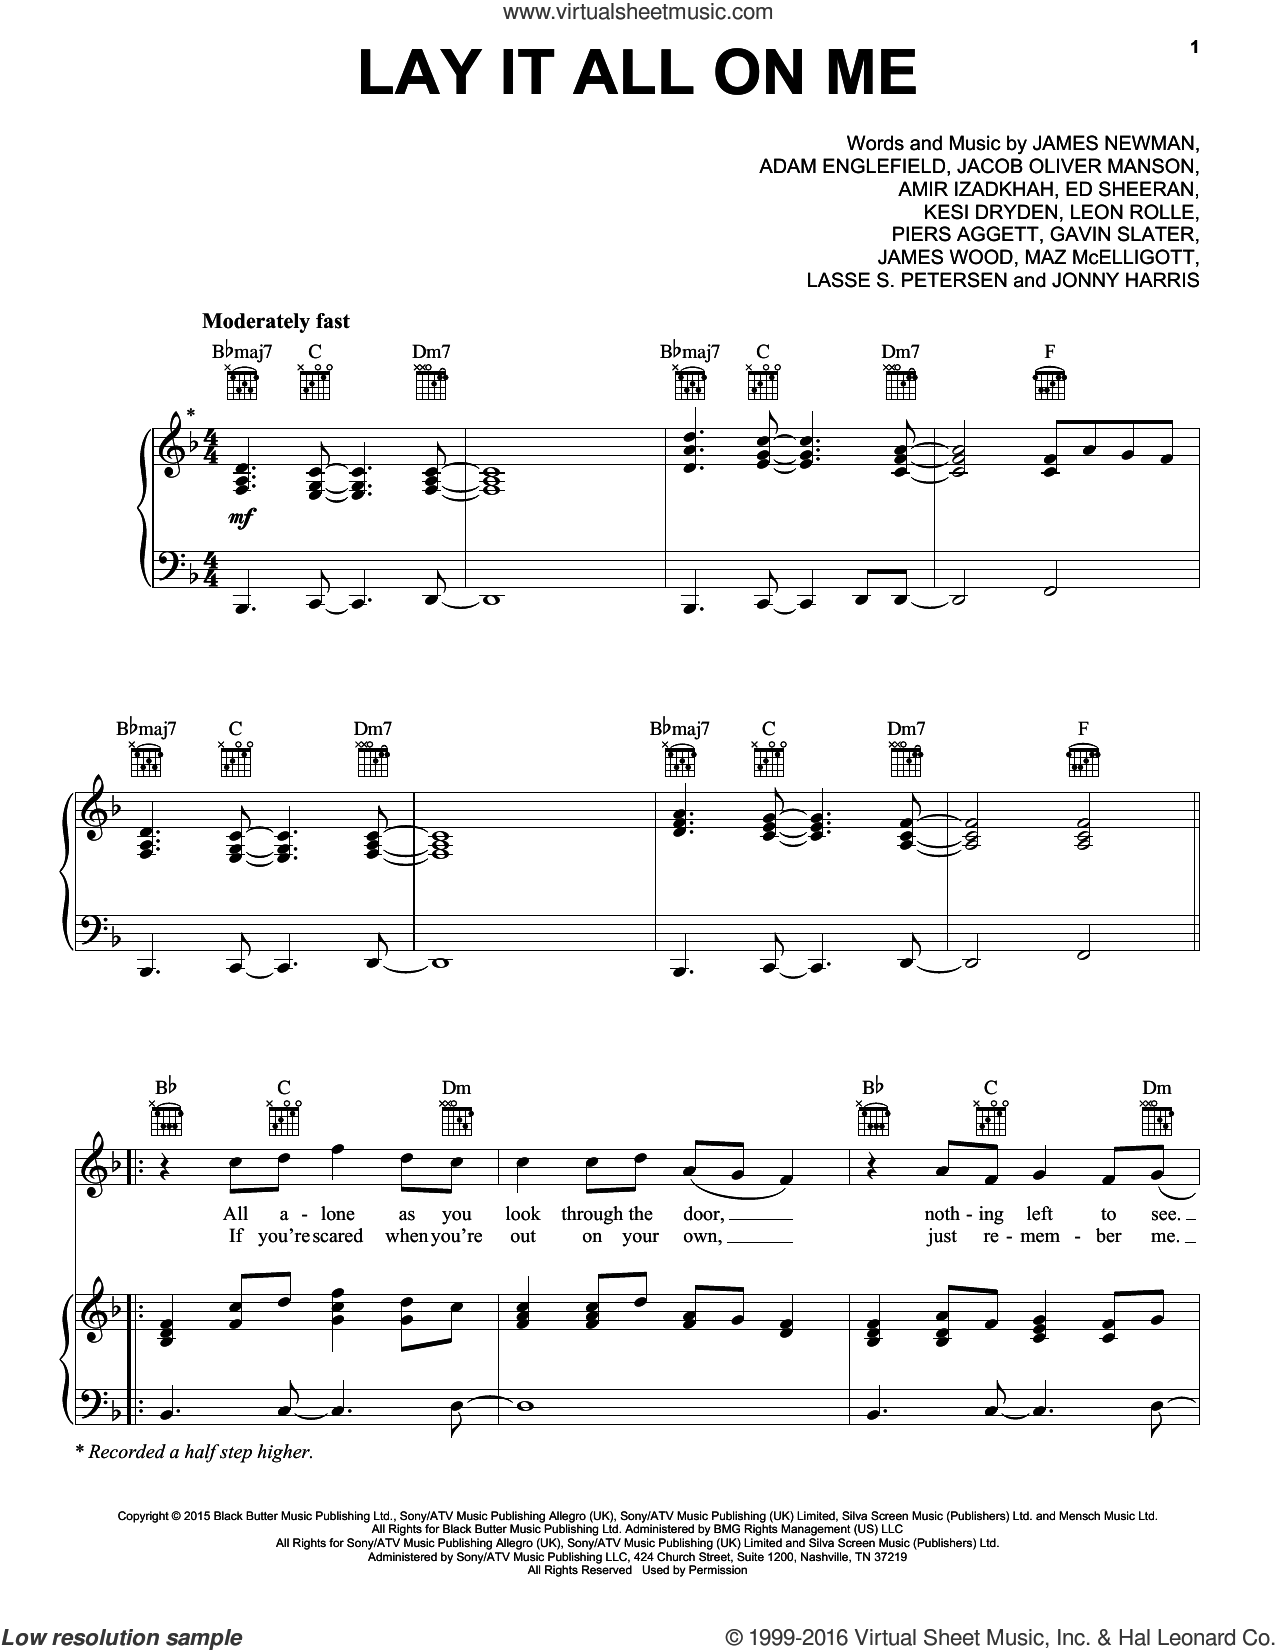 Lay It All On Me sheet music for voice, piano or guitar by Rudimental feat. Ed Sheeran, Adam Englefield, Amir Izadkhah, Ed Sheeran, Eddie Harris, Gavin Slater, Jacob Manson, James Newman, James Wood, Kesi Dryden, Lasse Petersen, Leon Rolle, Max McElligott and Piers Agget, intermediate skill level